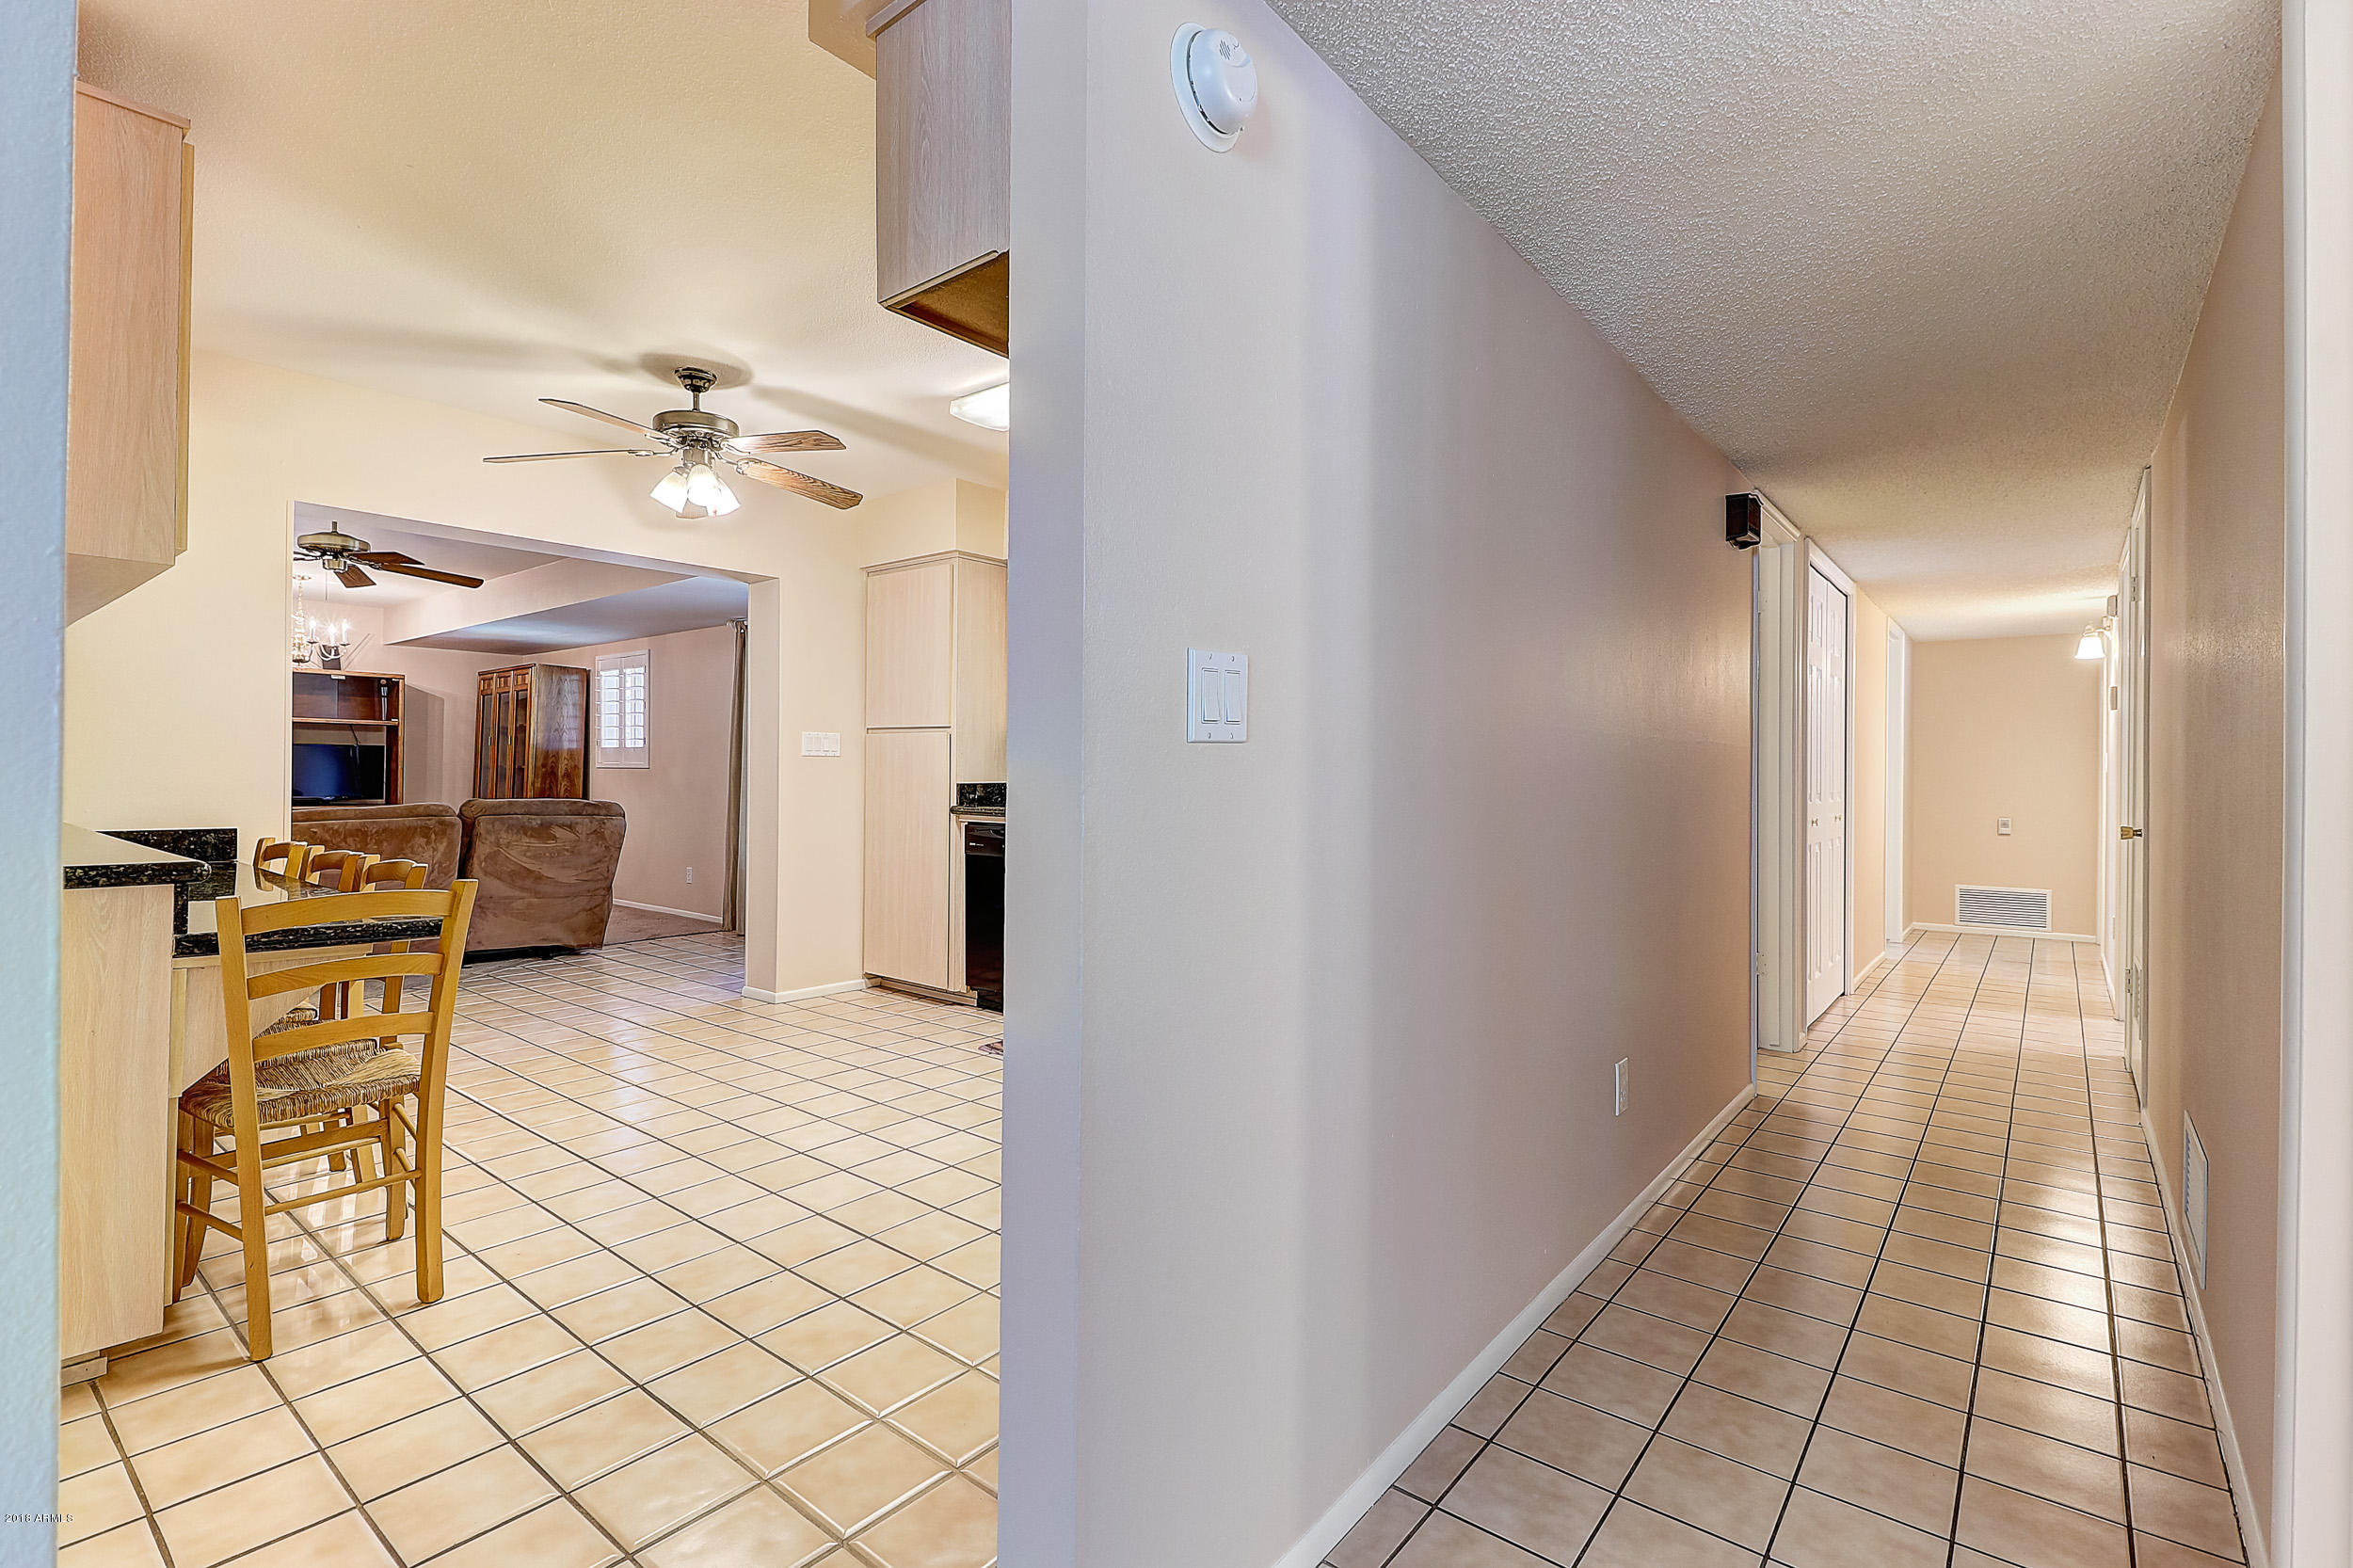 4824 N 35TH Street Phoenix, AZ 85018 - MLS #: 5859338